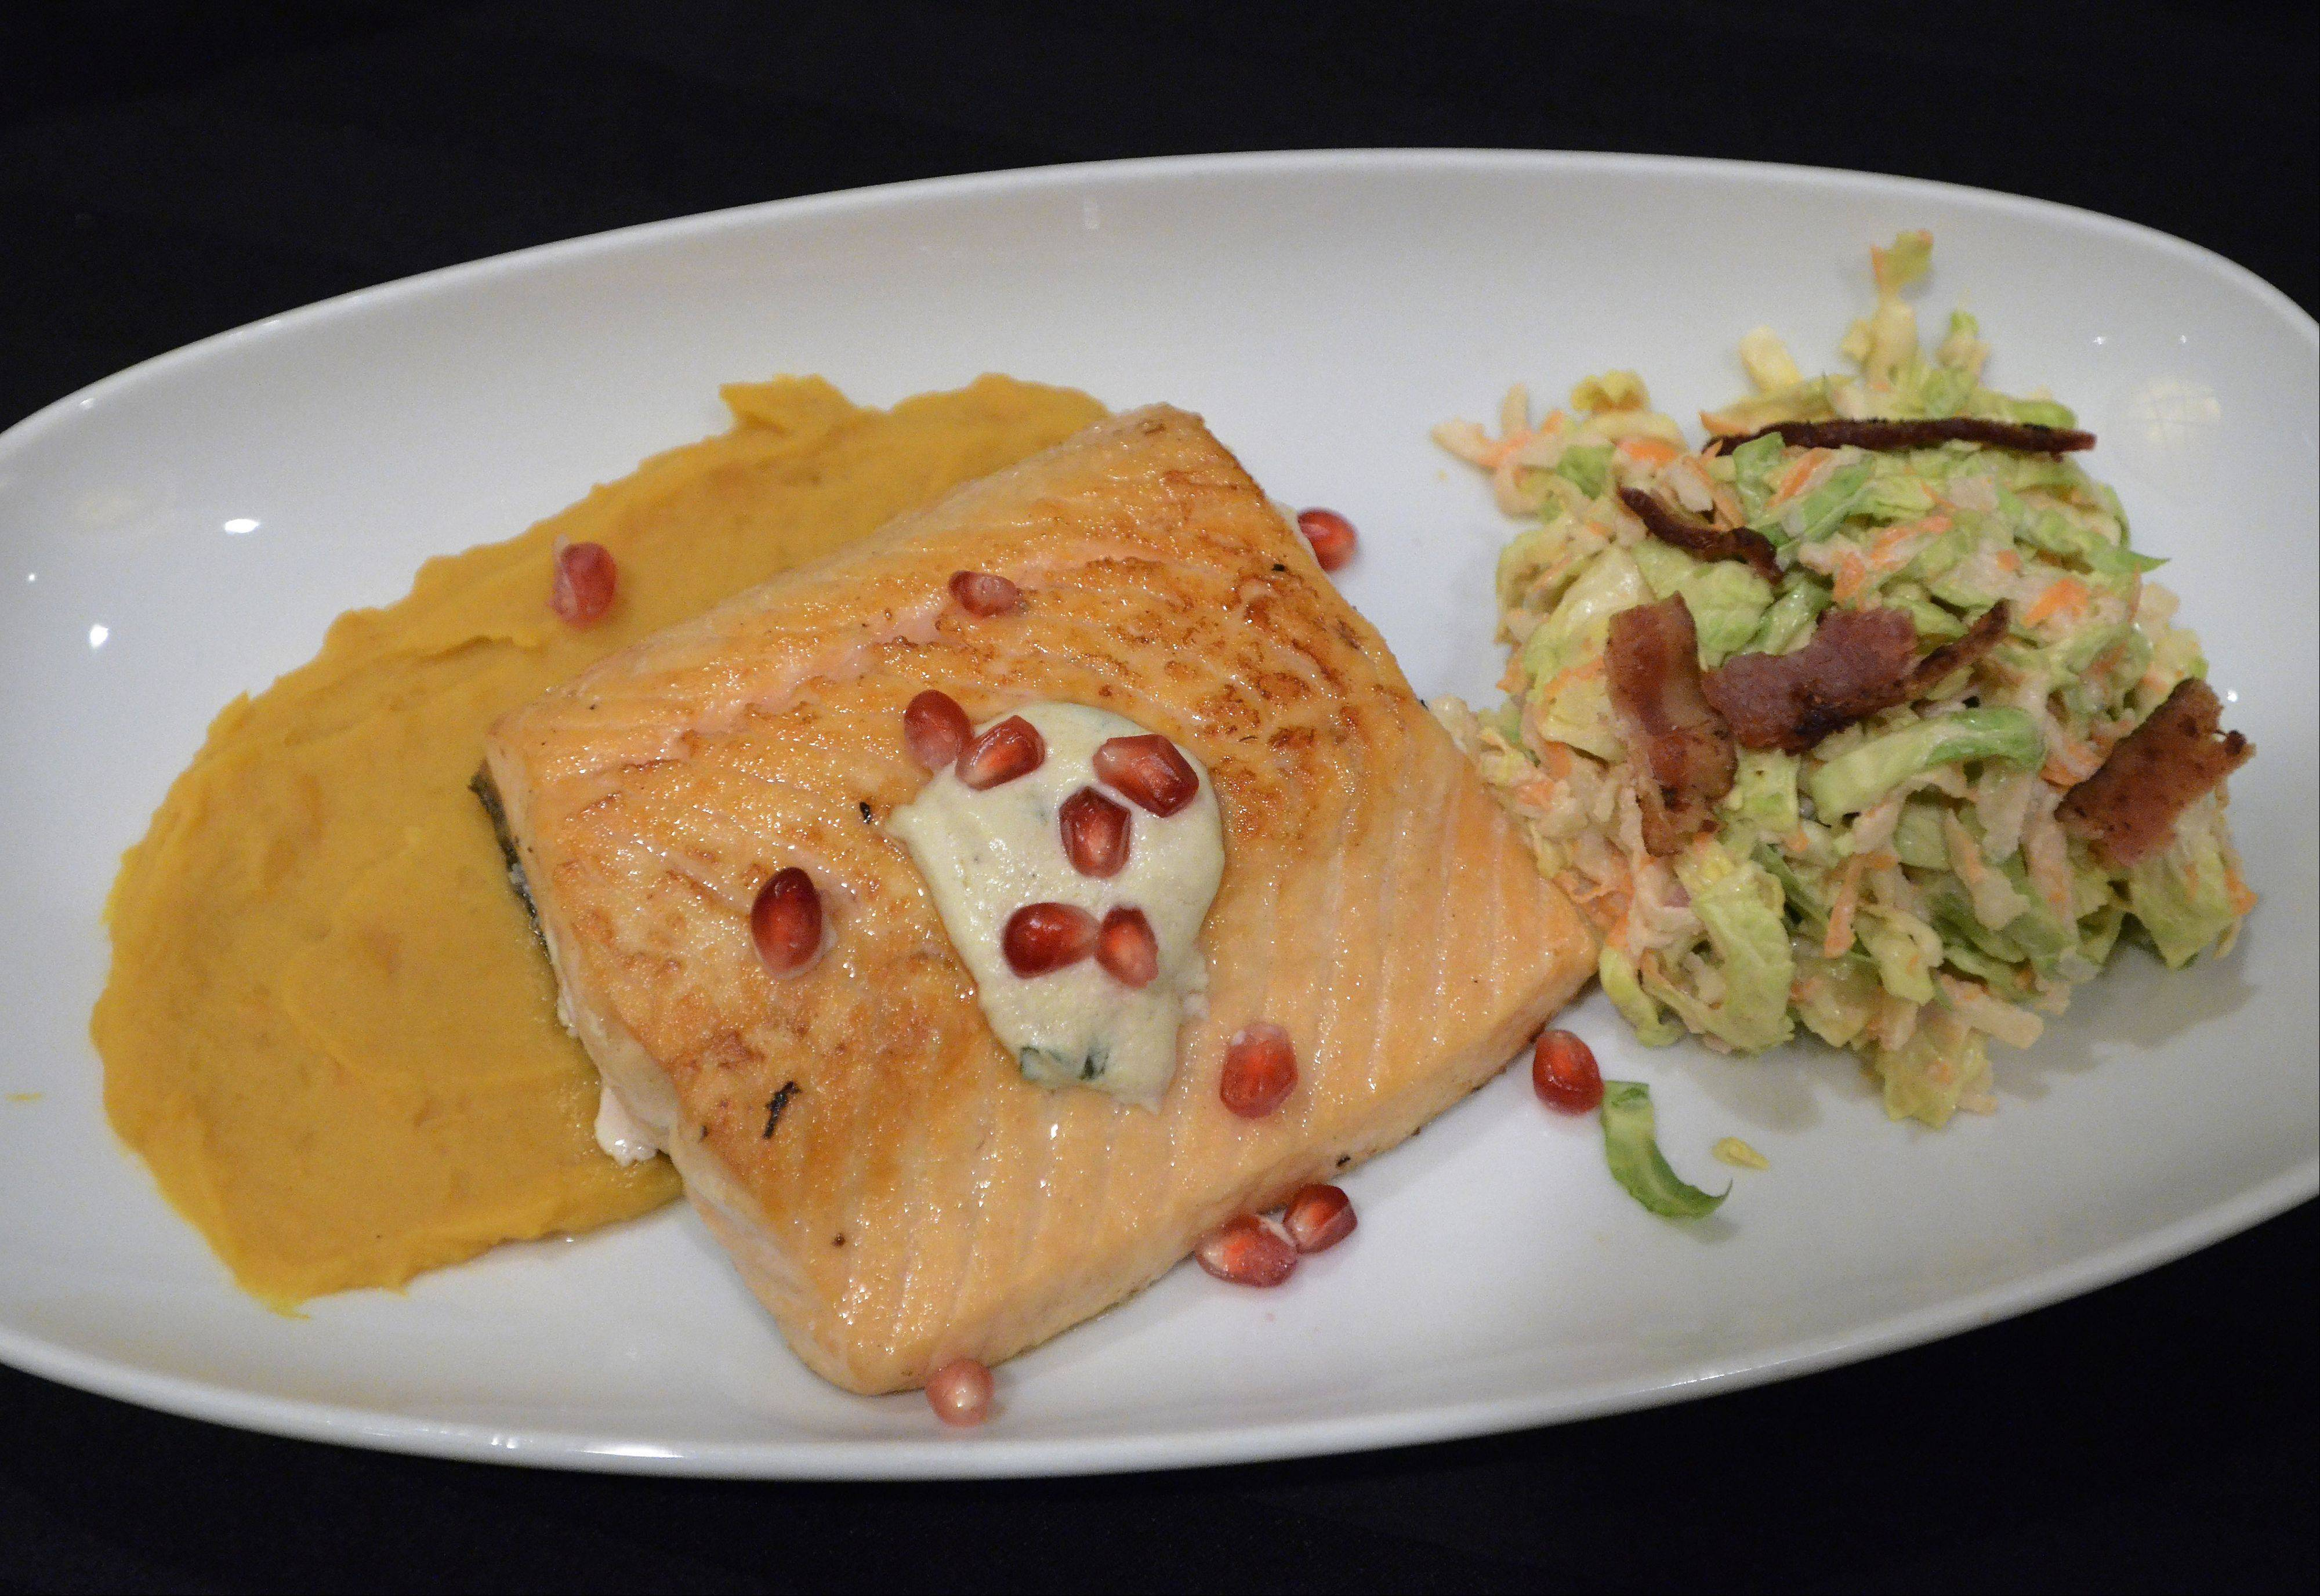 Michael Pennisi of Carpentersville won the Cook of the Week Challenge with his sauteed salmon with spicy sweet potatoes and brussels sprouts slaw.